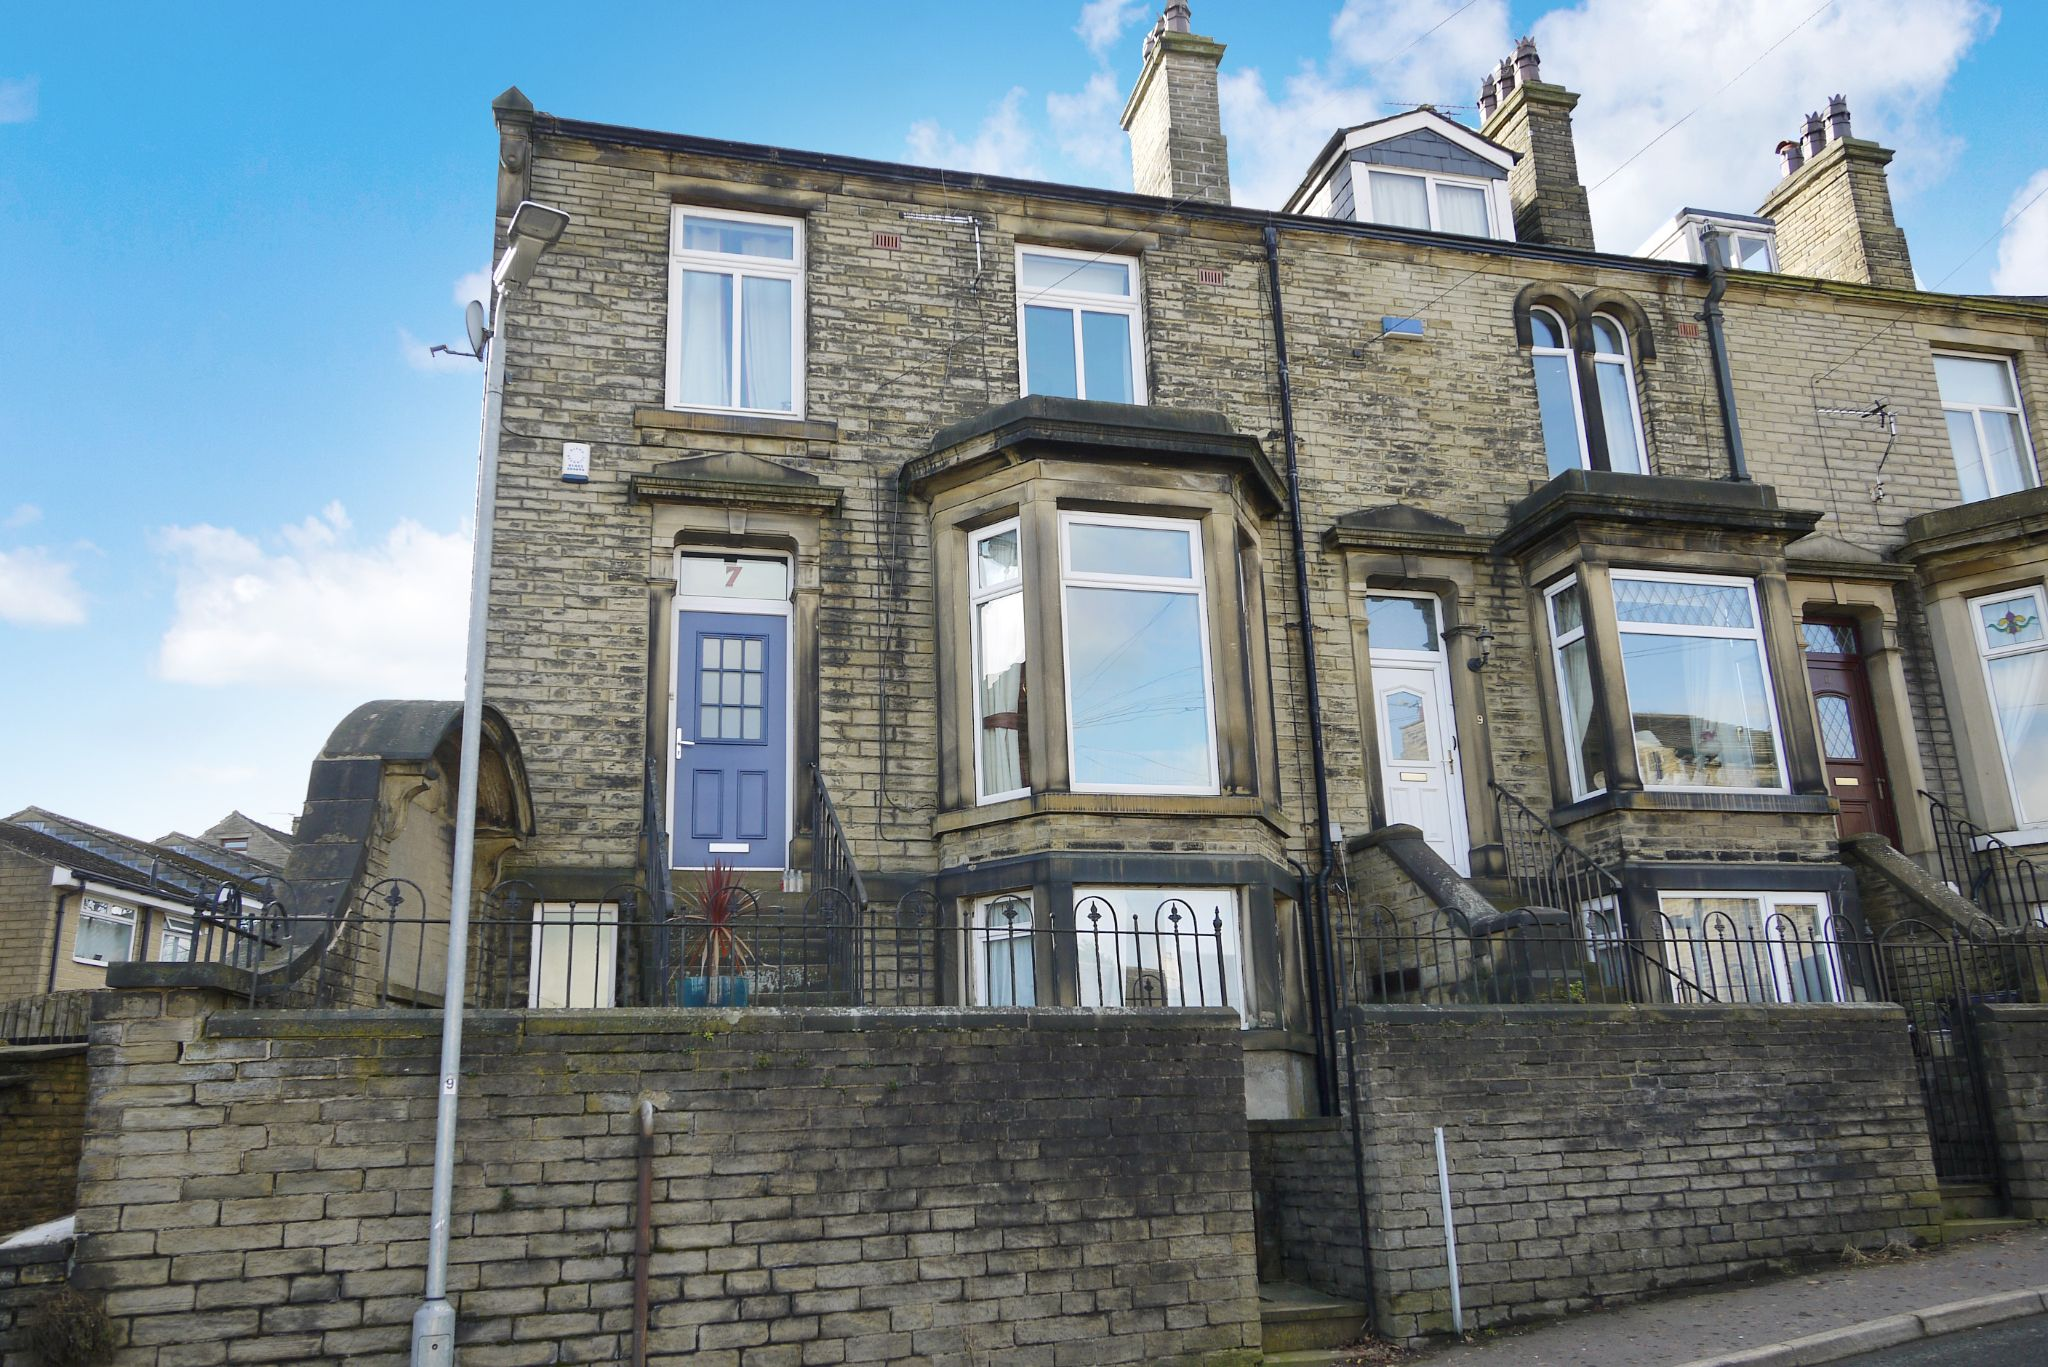 5 bedroom end terraced house SSTC in Calderdale - Photograph 5.